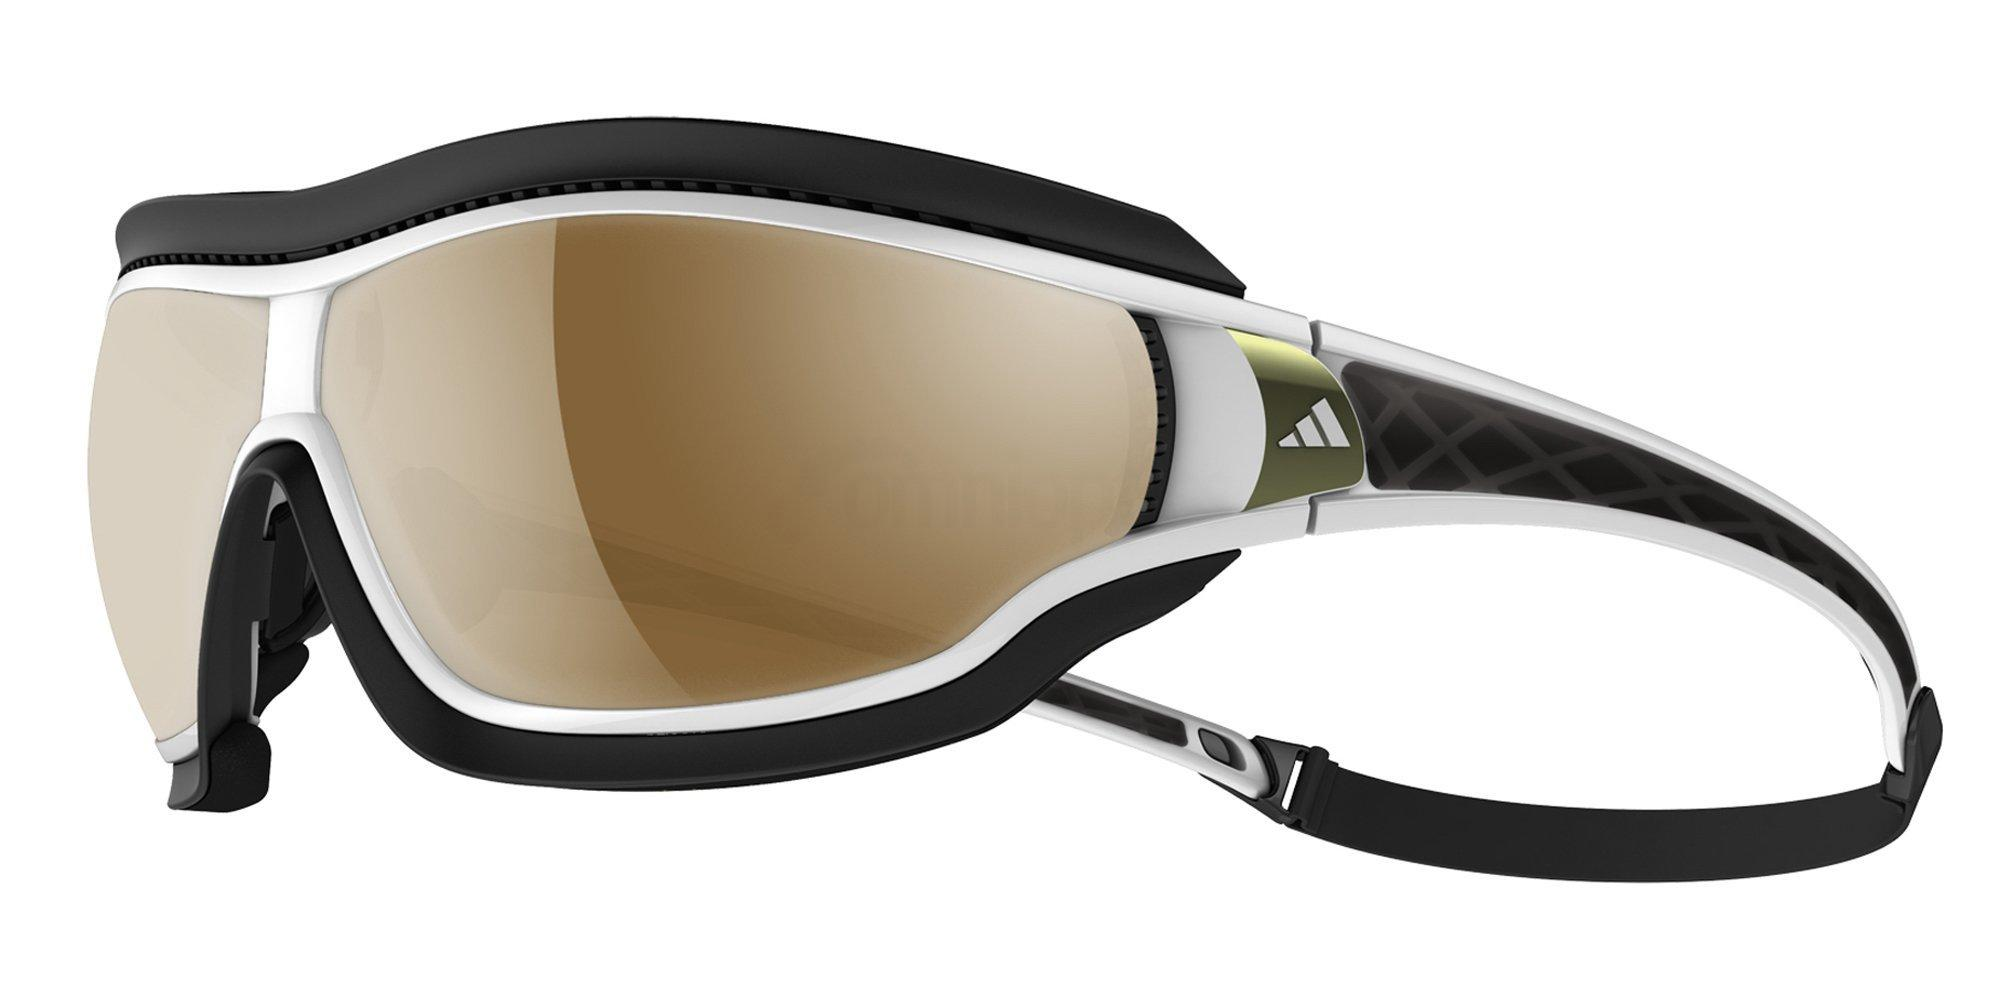 a196 00 6052 a196 Tycane Pro Outdoor L Sunglasses, Adidas